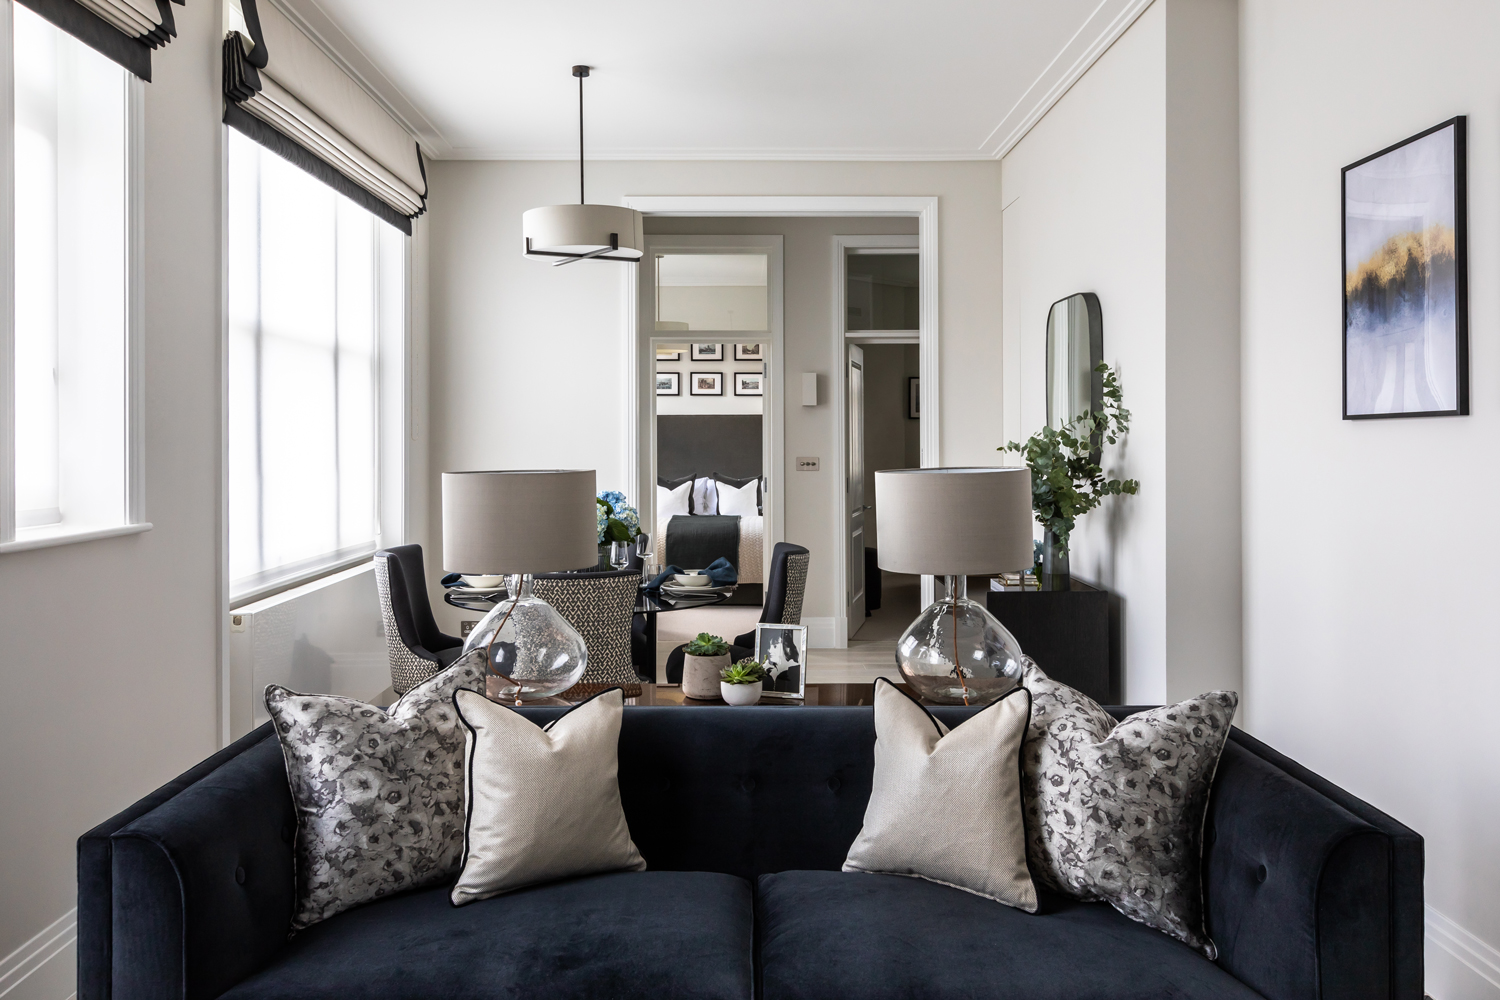 Portfolio Image of Wetherby Mansions, Earls Court, London – Second Apartment